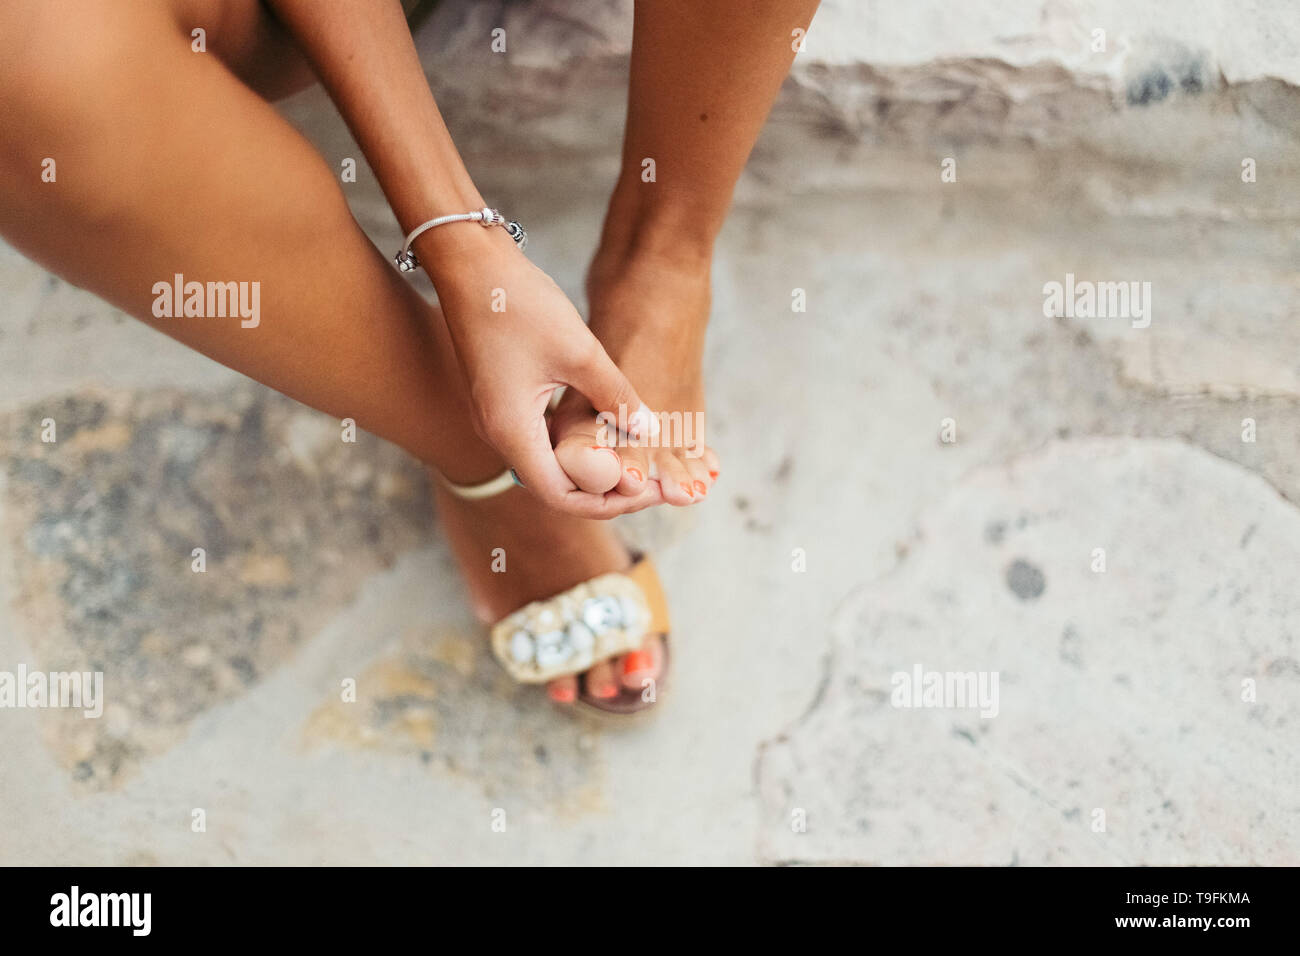 Tourist woman with sore feet and blisters checks her aching feet. Stock Photo